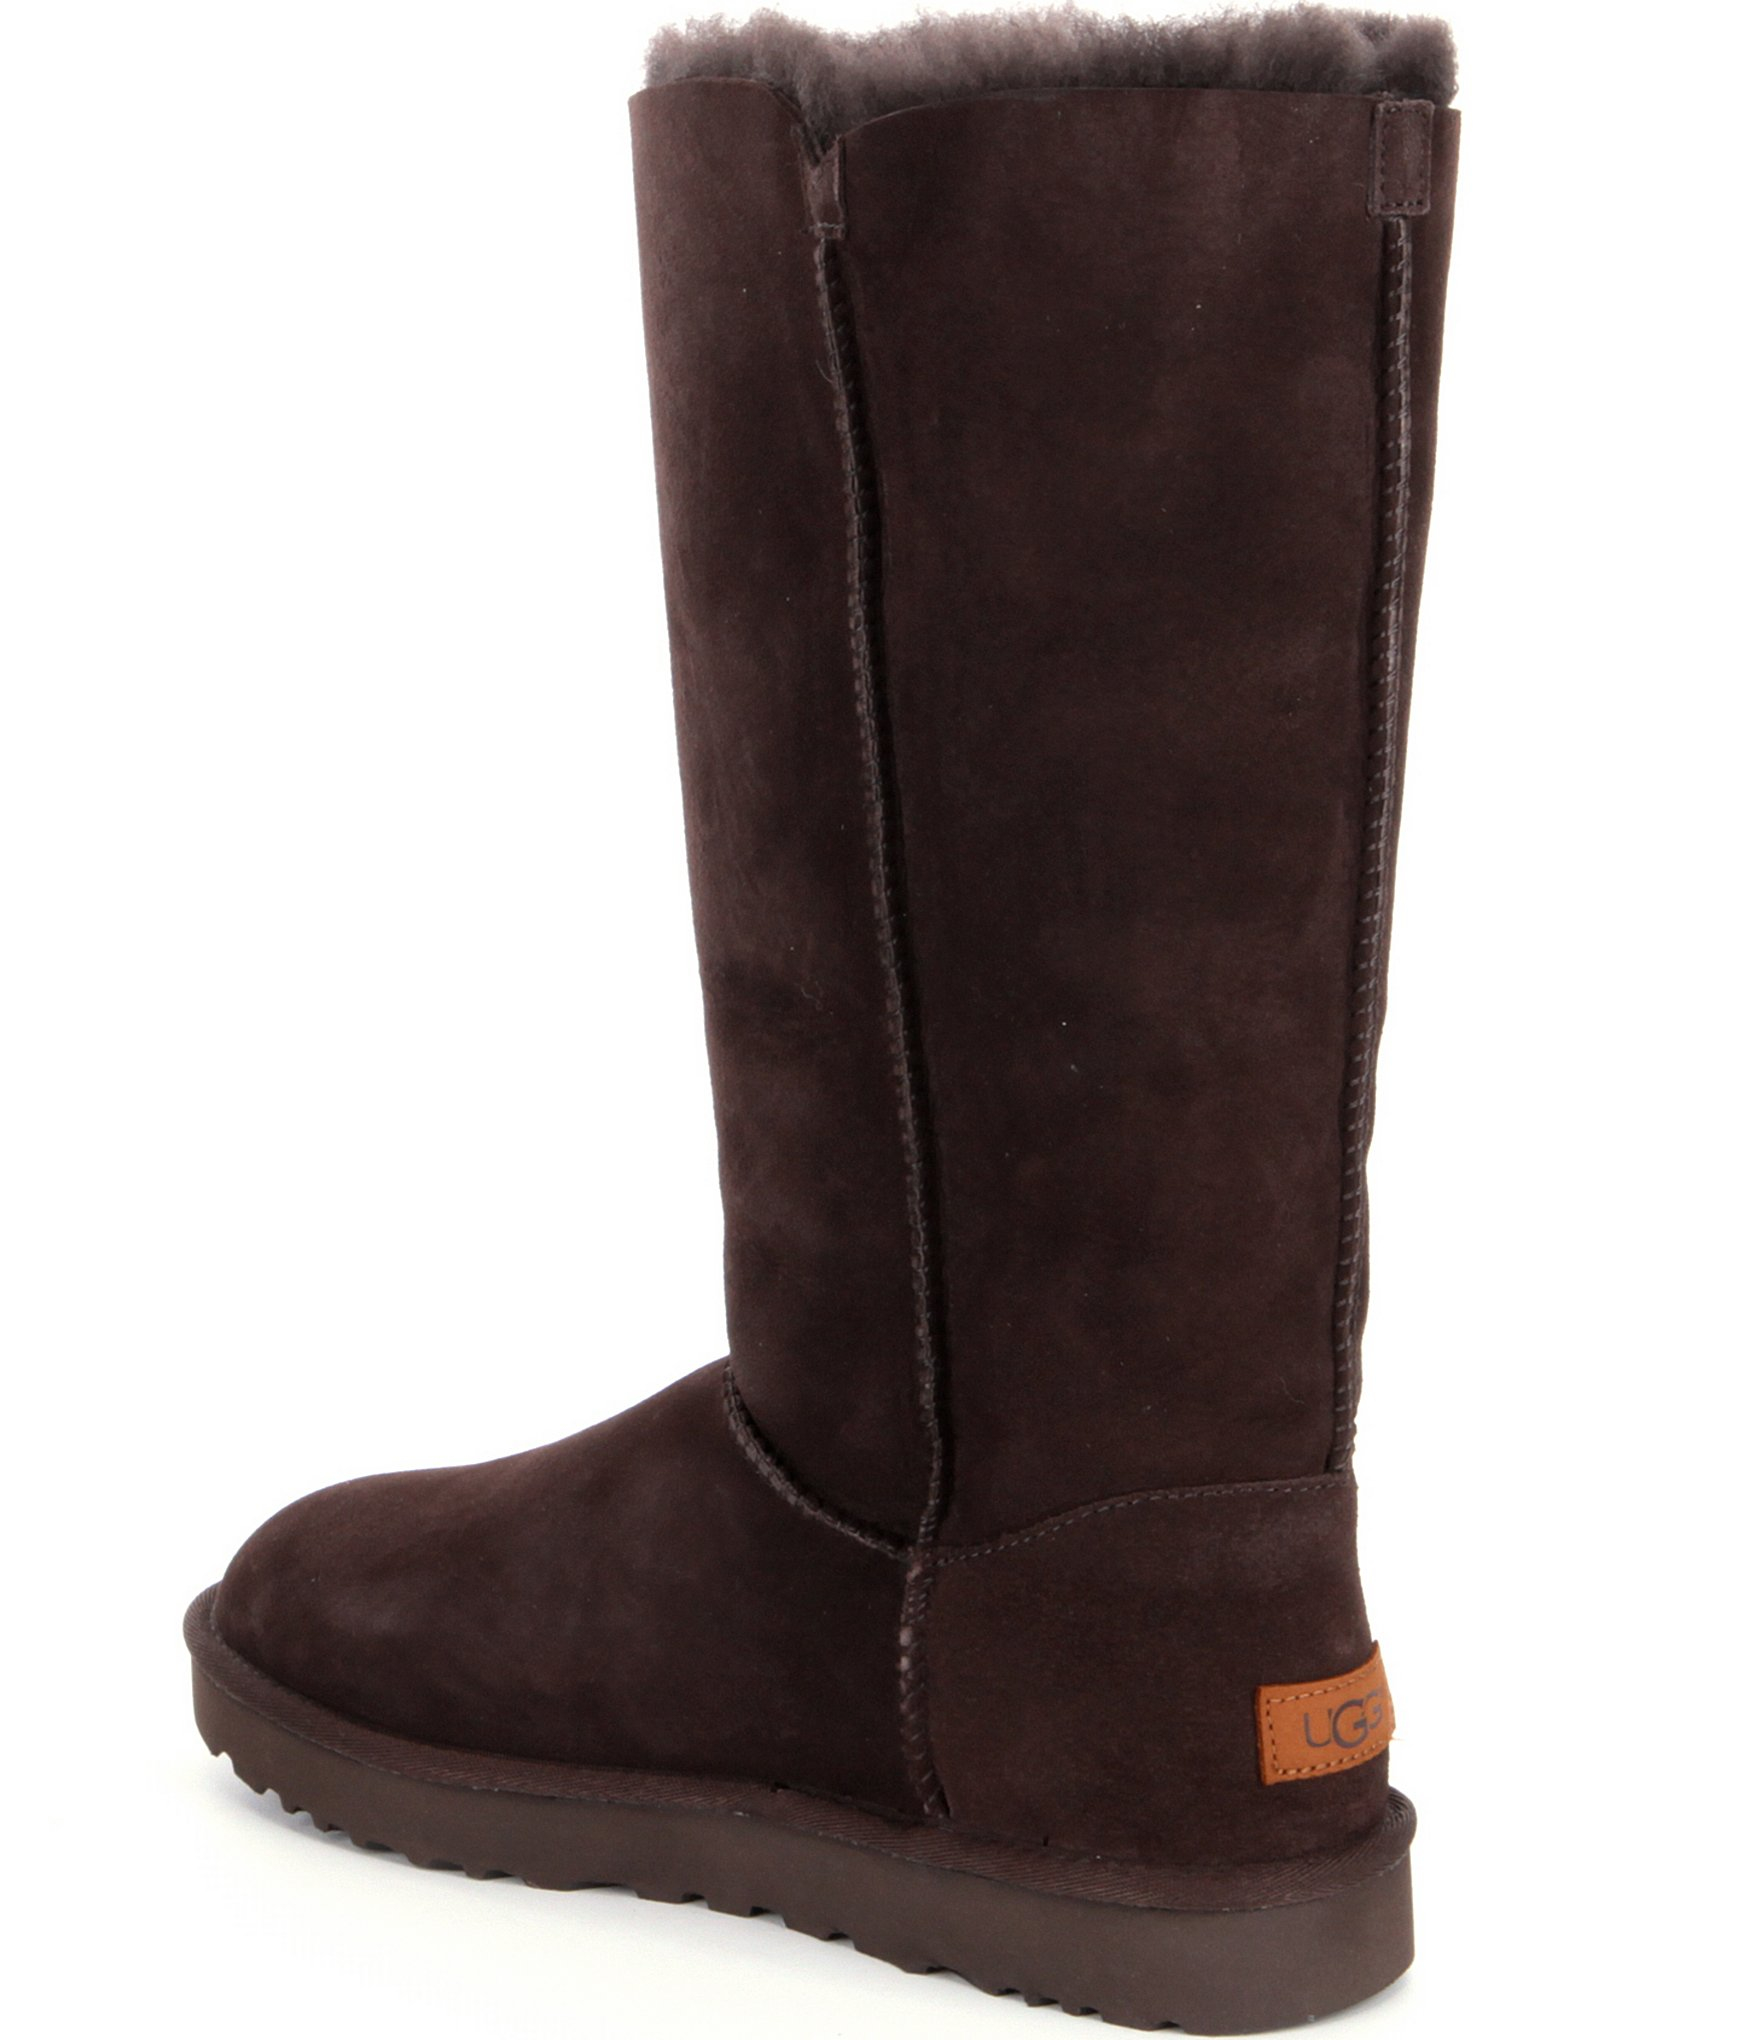 Ugg Suede 174 Bailey Button Triplet Ii Boots In Chocolate